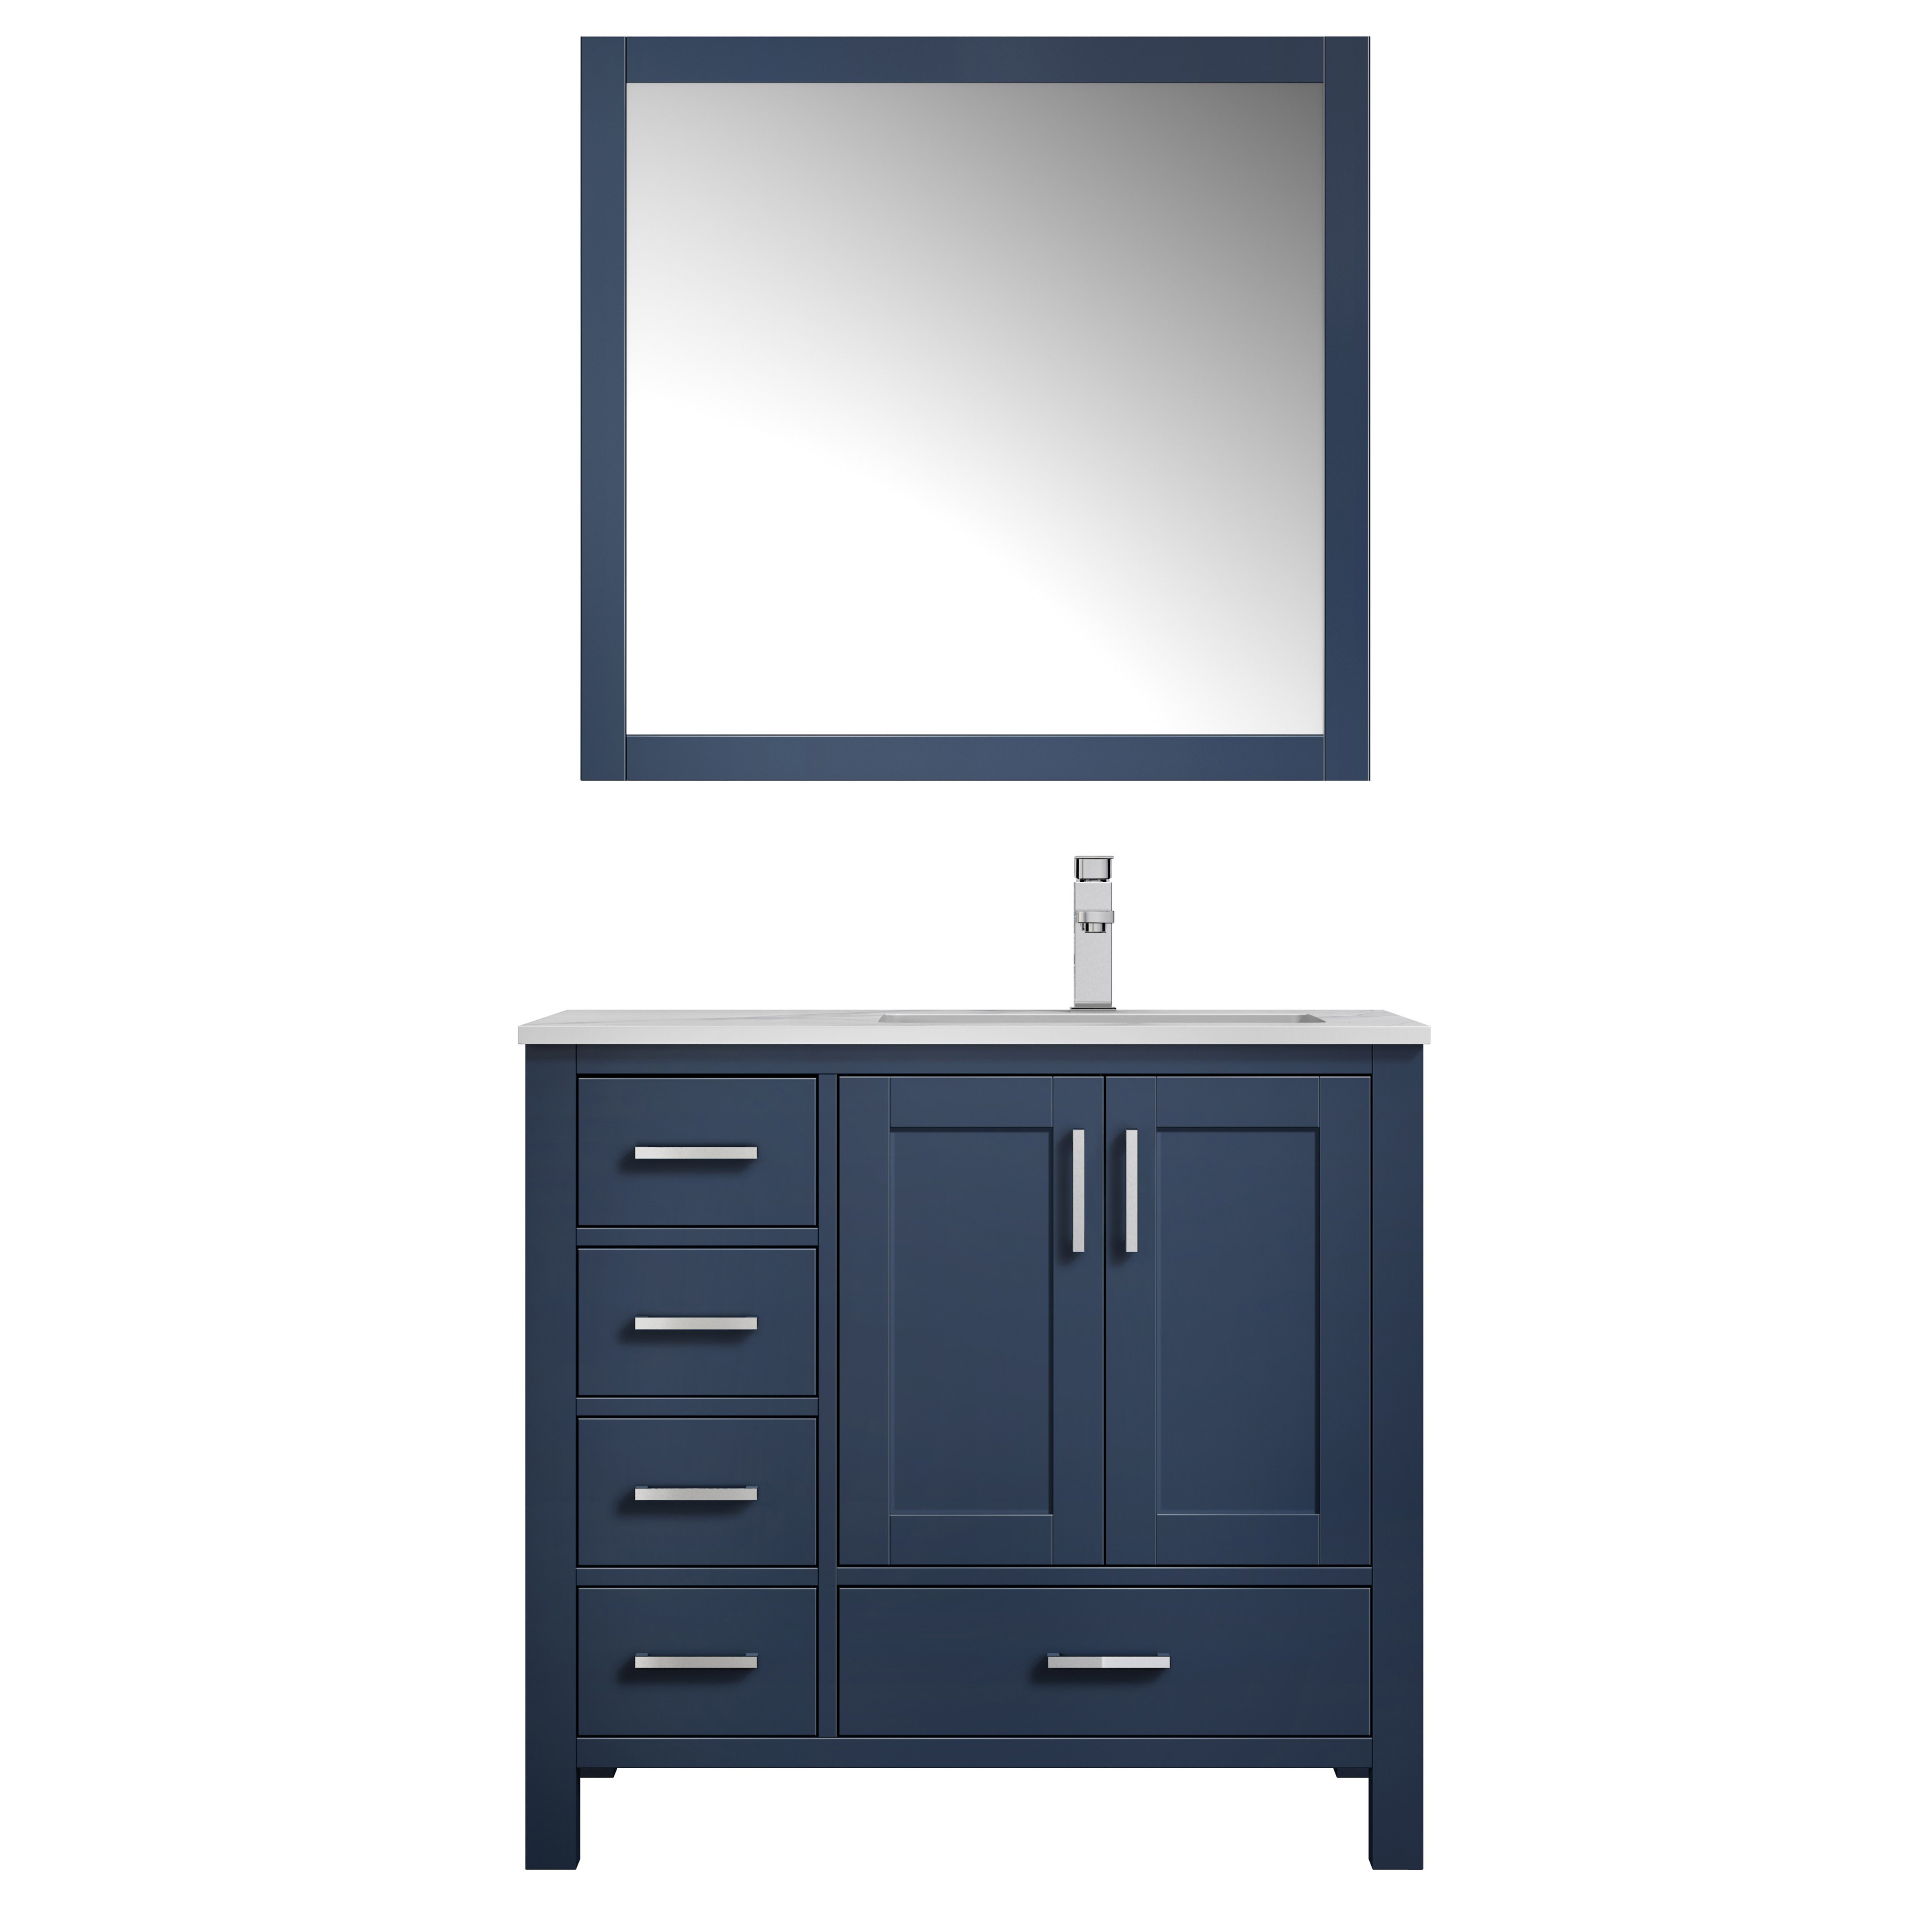 """36"""" Navy Blue Vanity Cabinet Only - Right Version with Countertop and Mirror Options"""